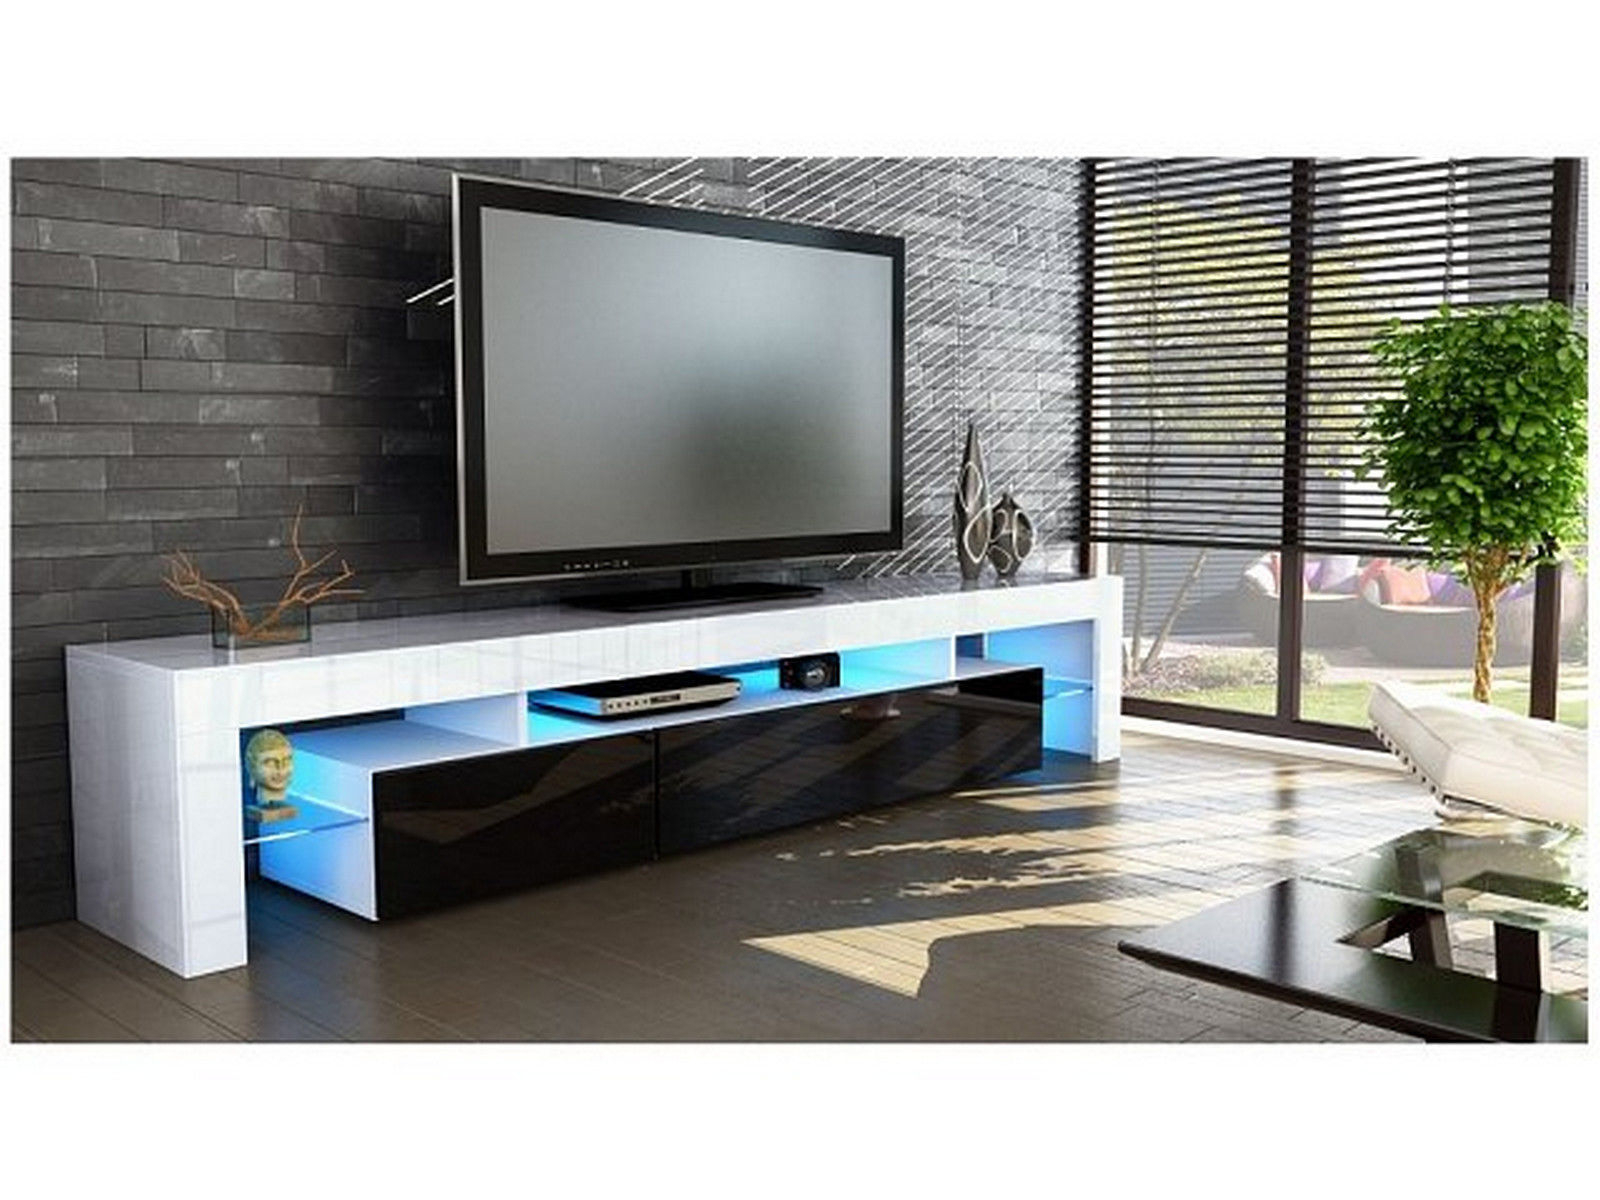 Peru Entertainment Tv Unit High Gloss – White Or Black – Cabinets Within Popular Black Gloss Tv Cabinets (View 13 of 20)